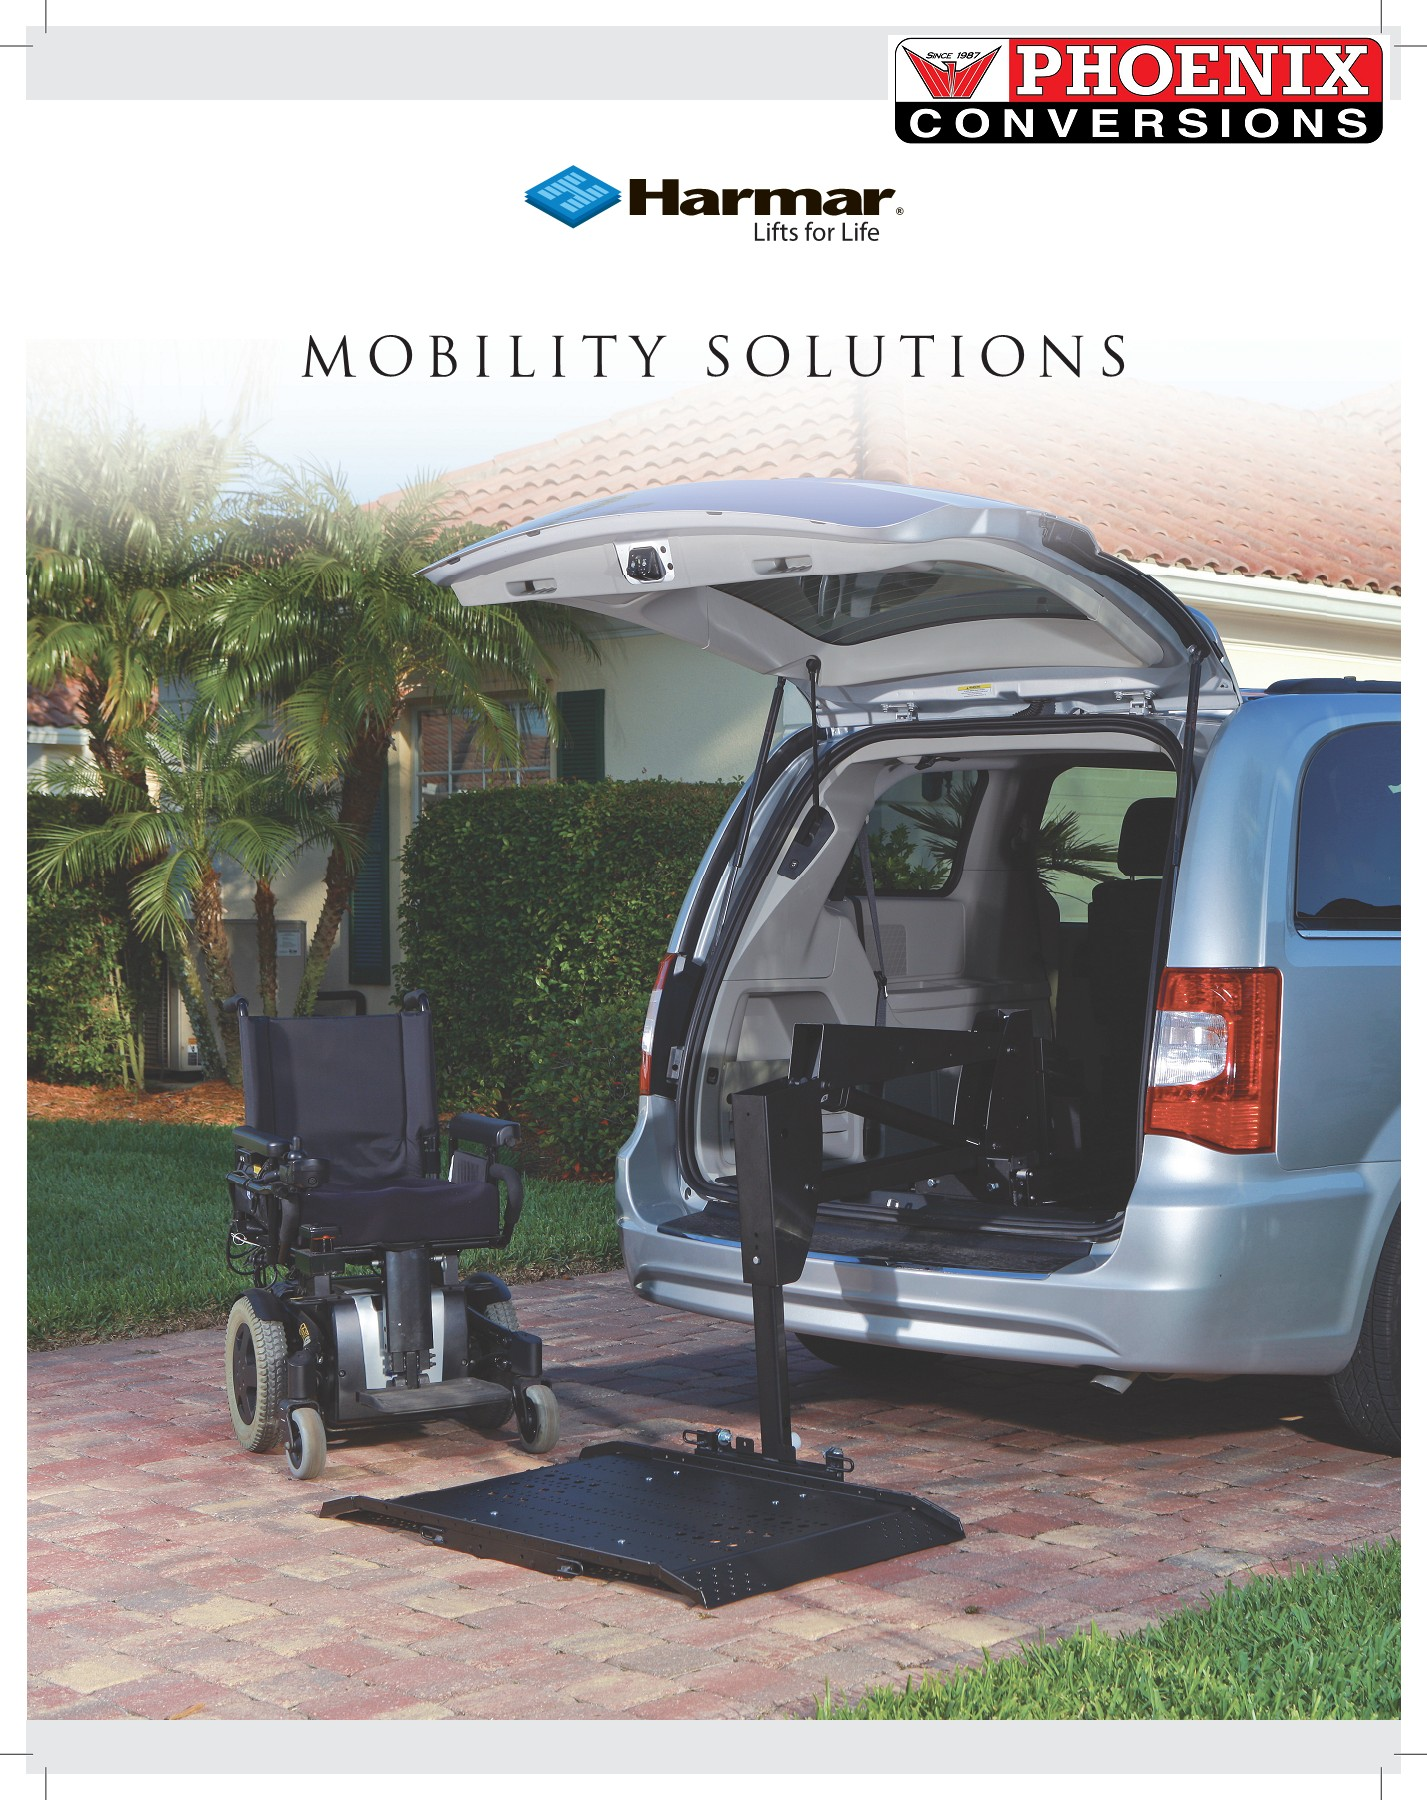 HARMAR MOBILITY 2016 Catalog Pages 1 - 36 - Text Version ... on harmar chair lift systems, harmar platform lifts, harmar parts list, harmar wheelchair lifts, harmar vehicle lifts,